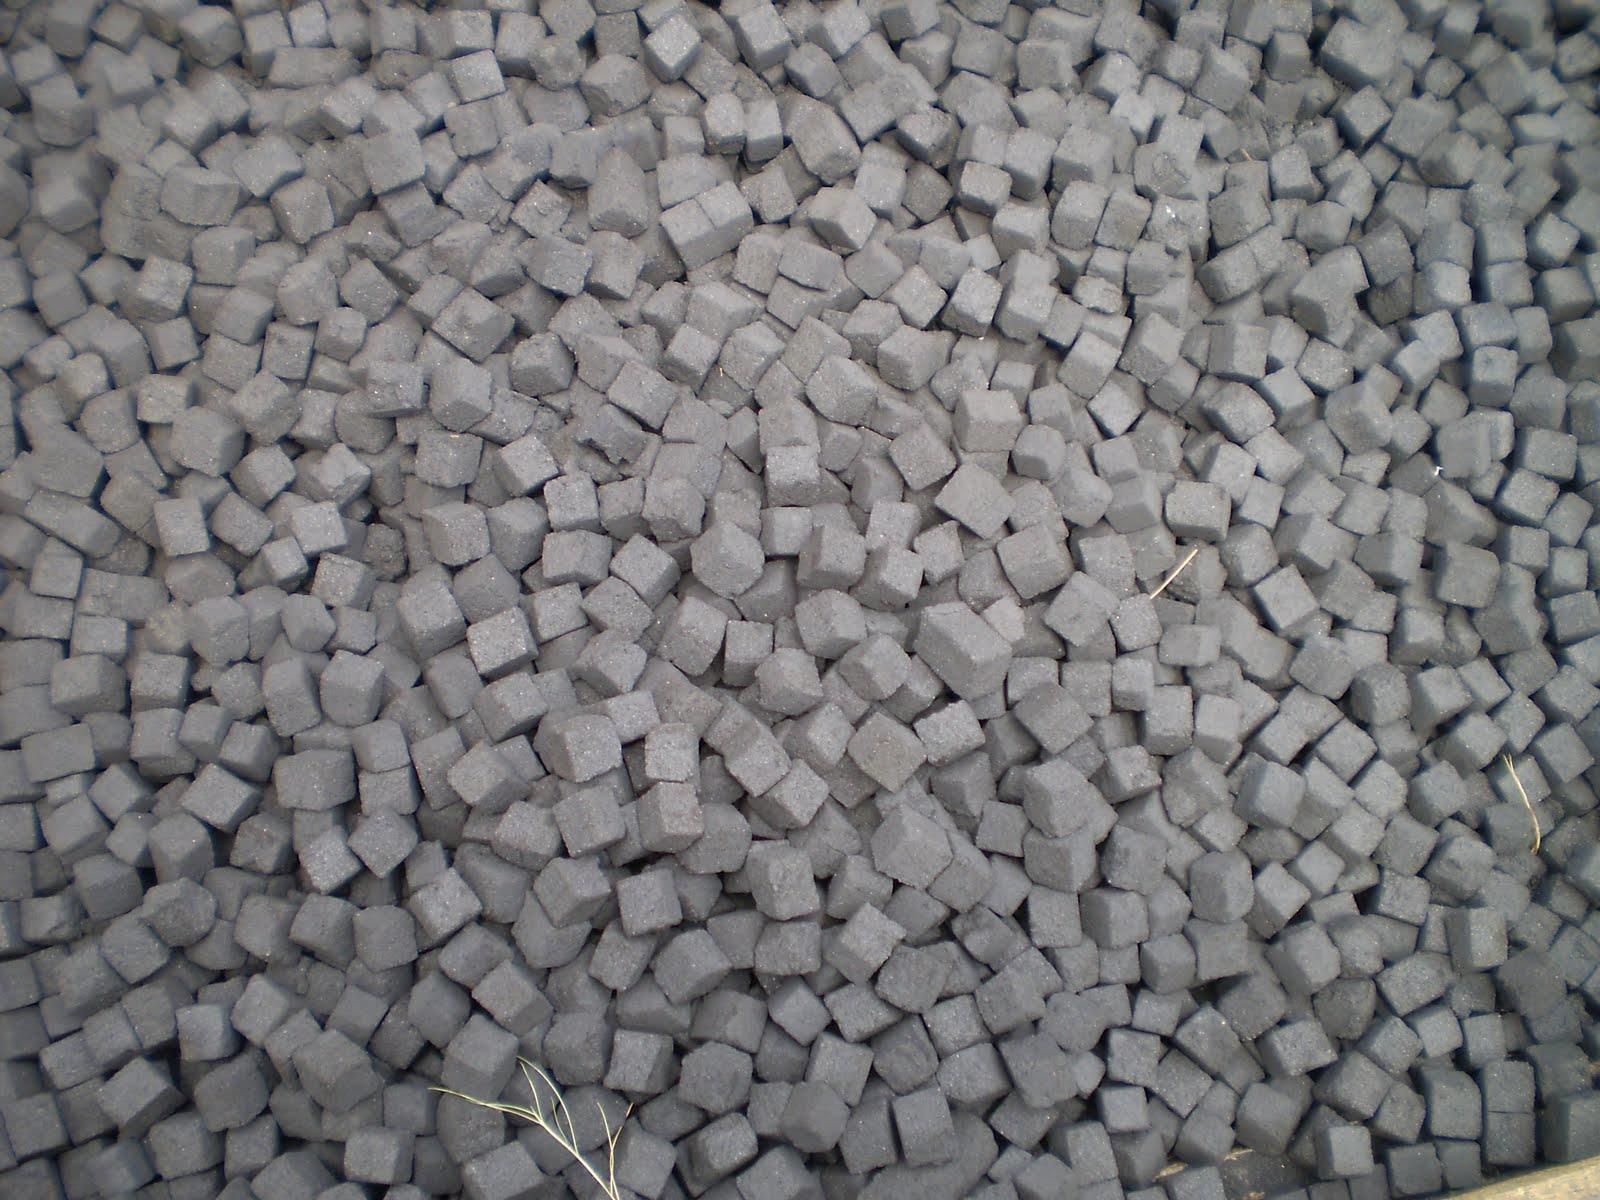 export coconut shell charcoal briquettes from indonesia by